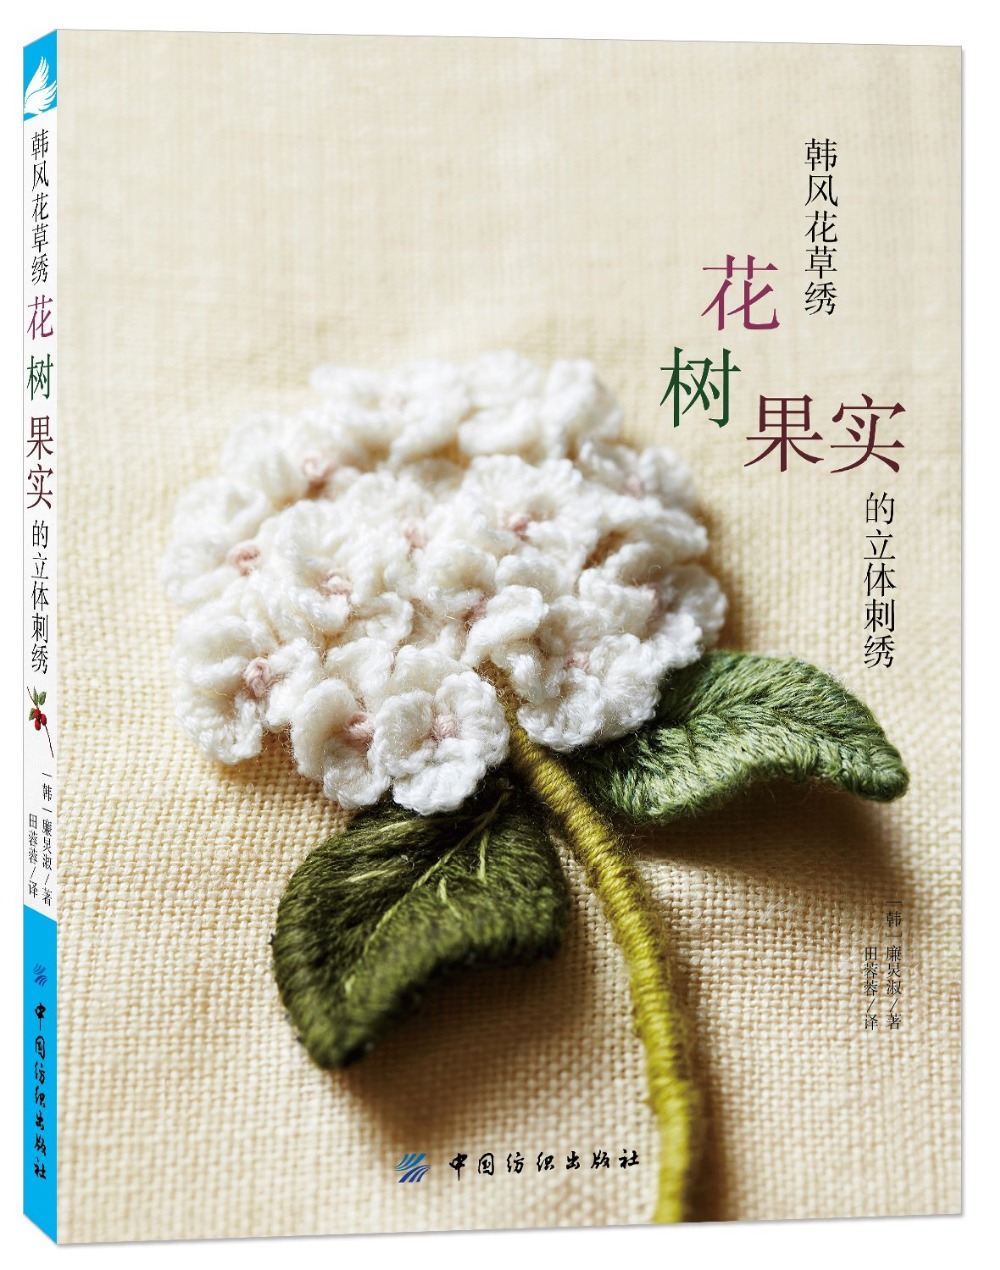 A three-dimensional embroidery of flowers, trees, and fruits / Chinese embroidery Handmade Art Design Book футболка tom tailor denim tom tailor denim to793embxdw1